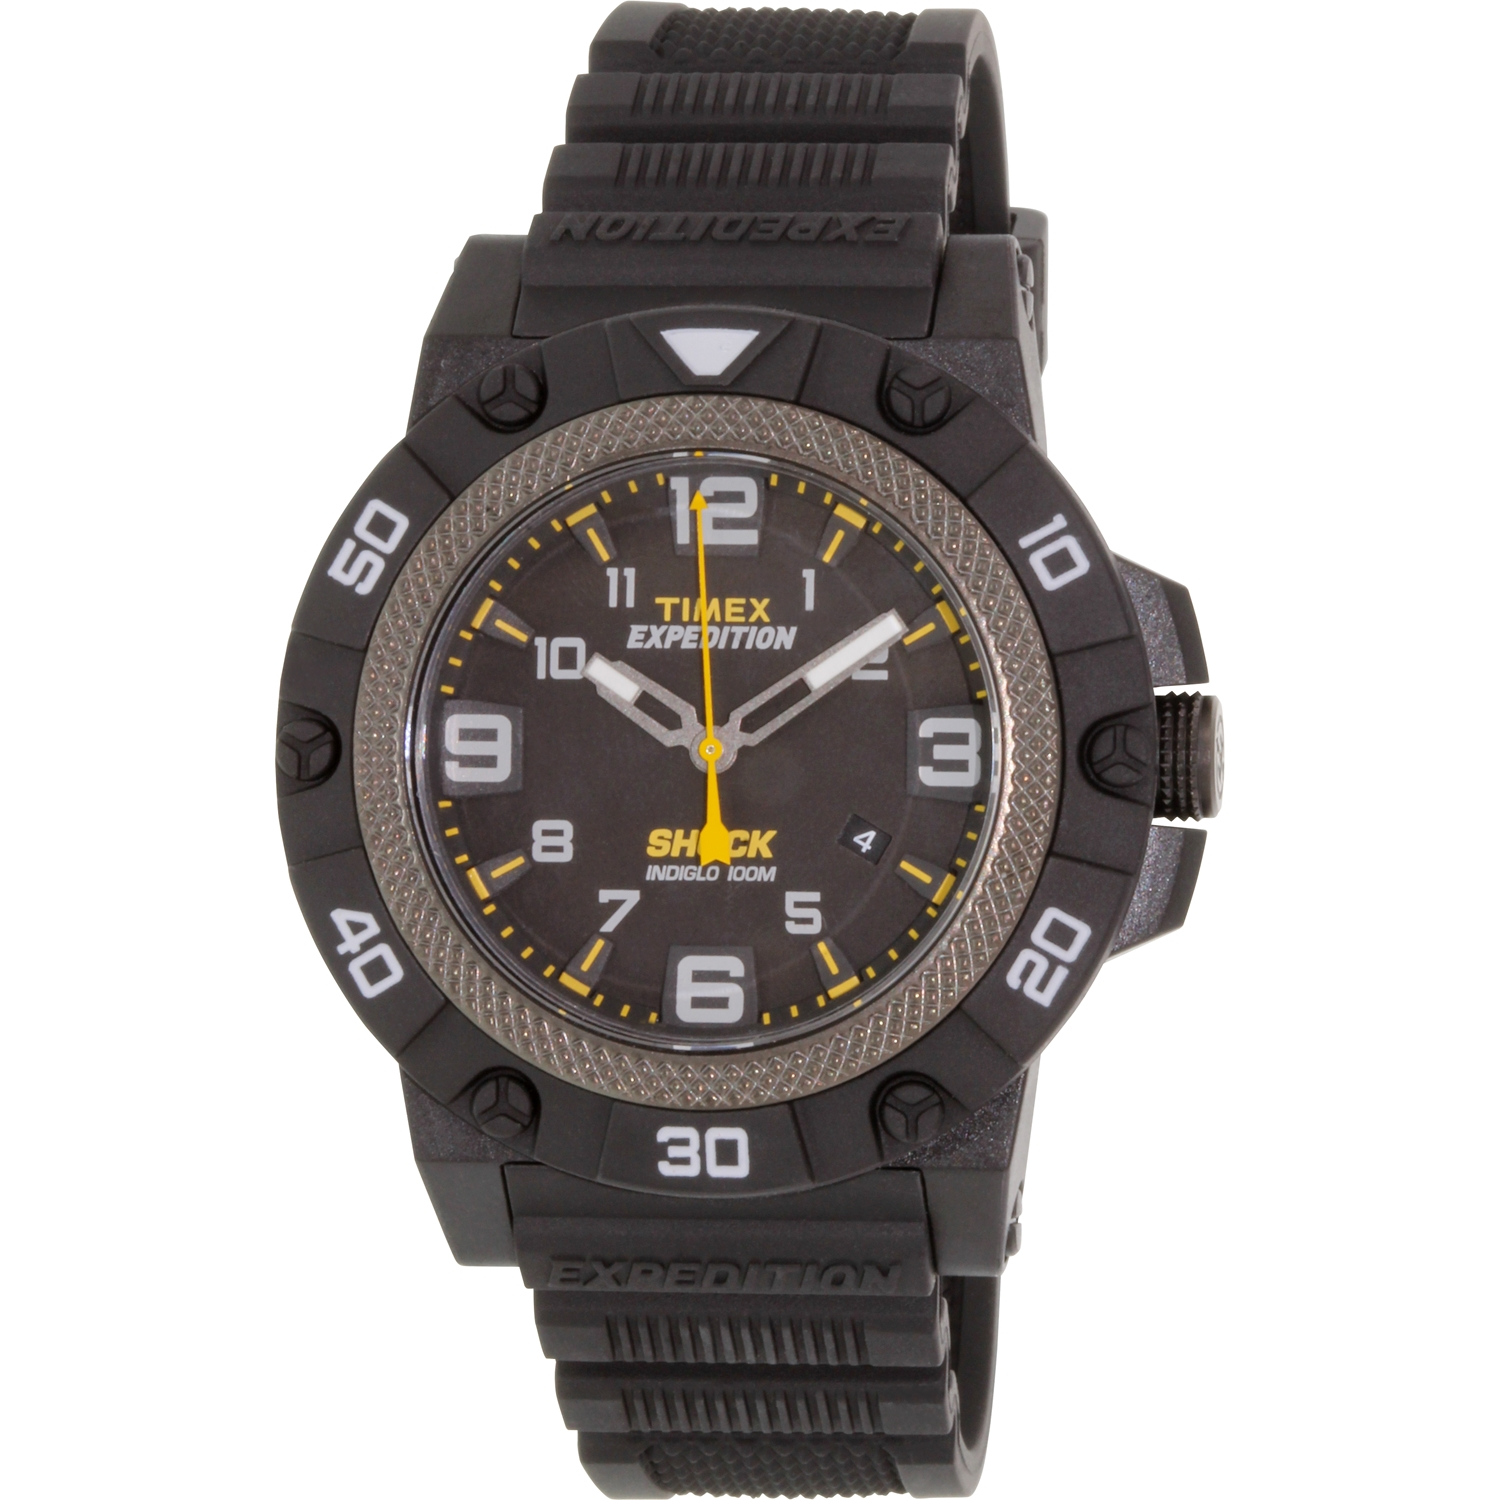 Timex Men's Expedition TW4B01000 Black Rubber Analog Quartz Sport Watch by Timex